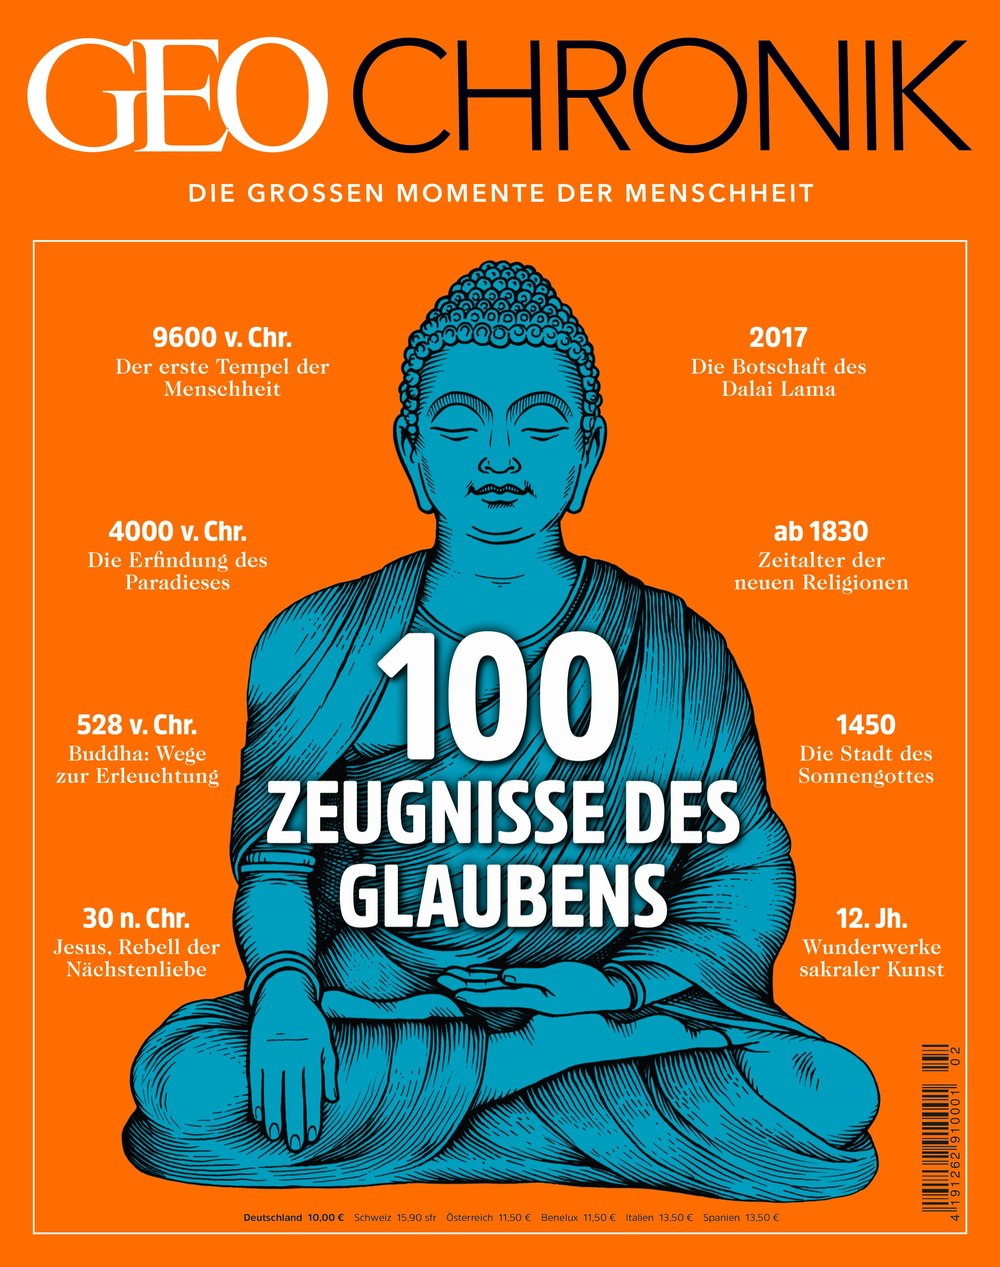 GEO CHRONIK 02/2018